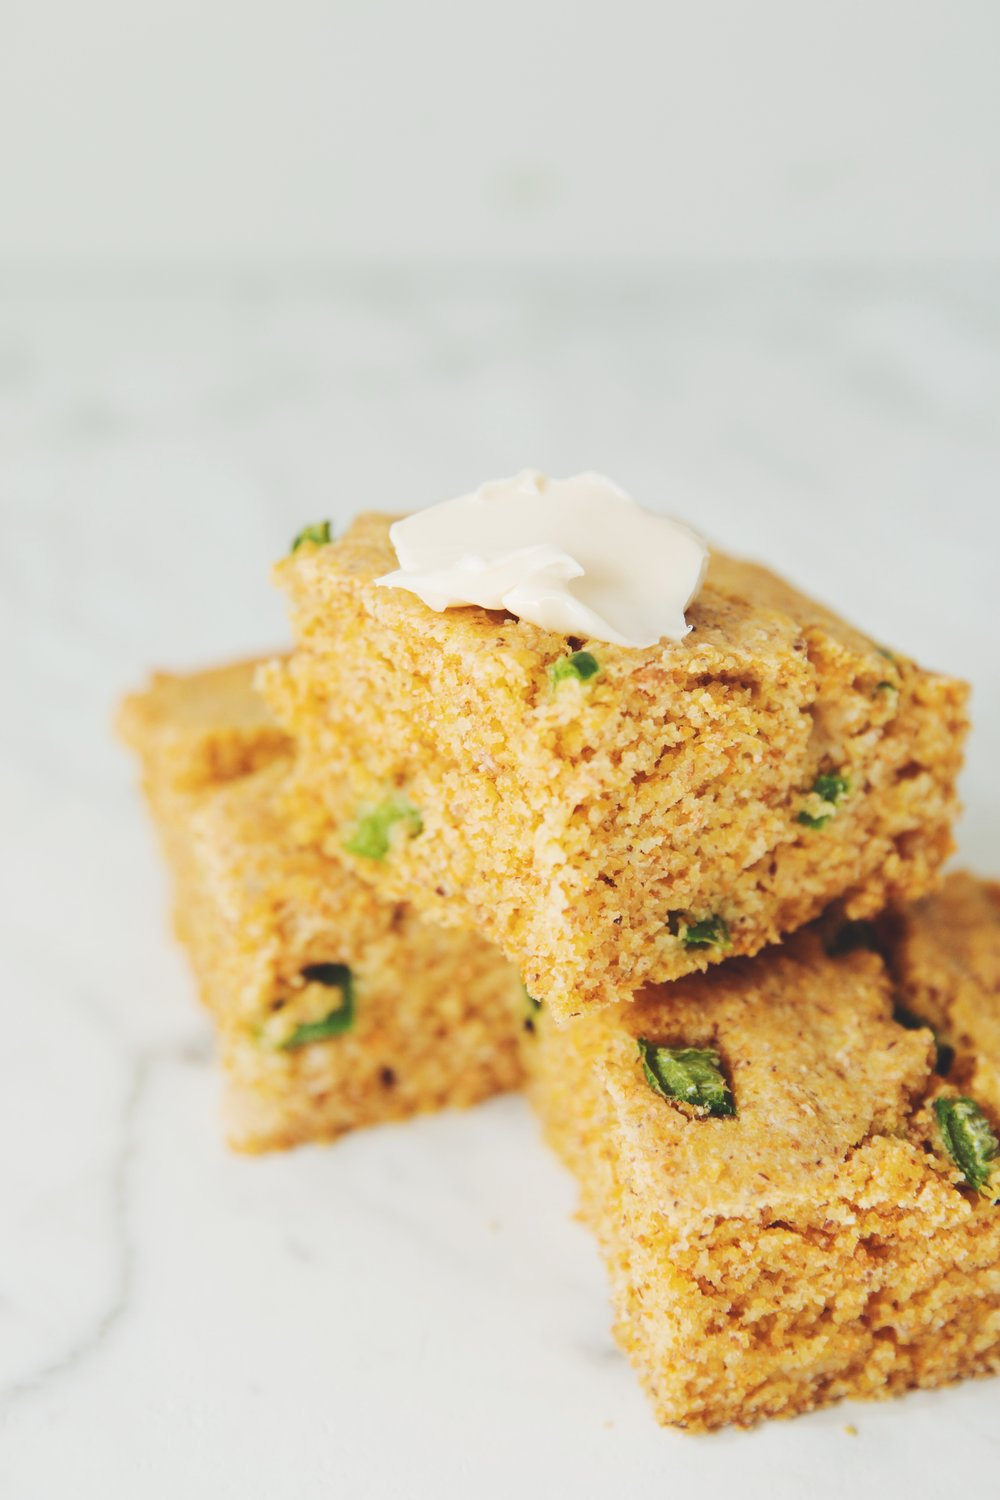 vegan jalapeño cornbread | RECIPE on hotforfoodblog.com